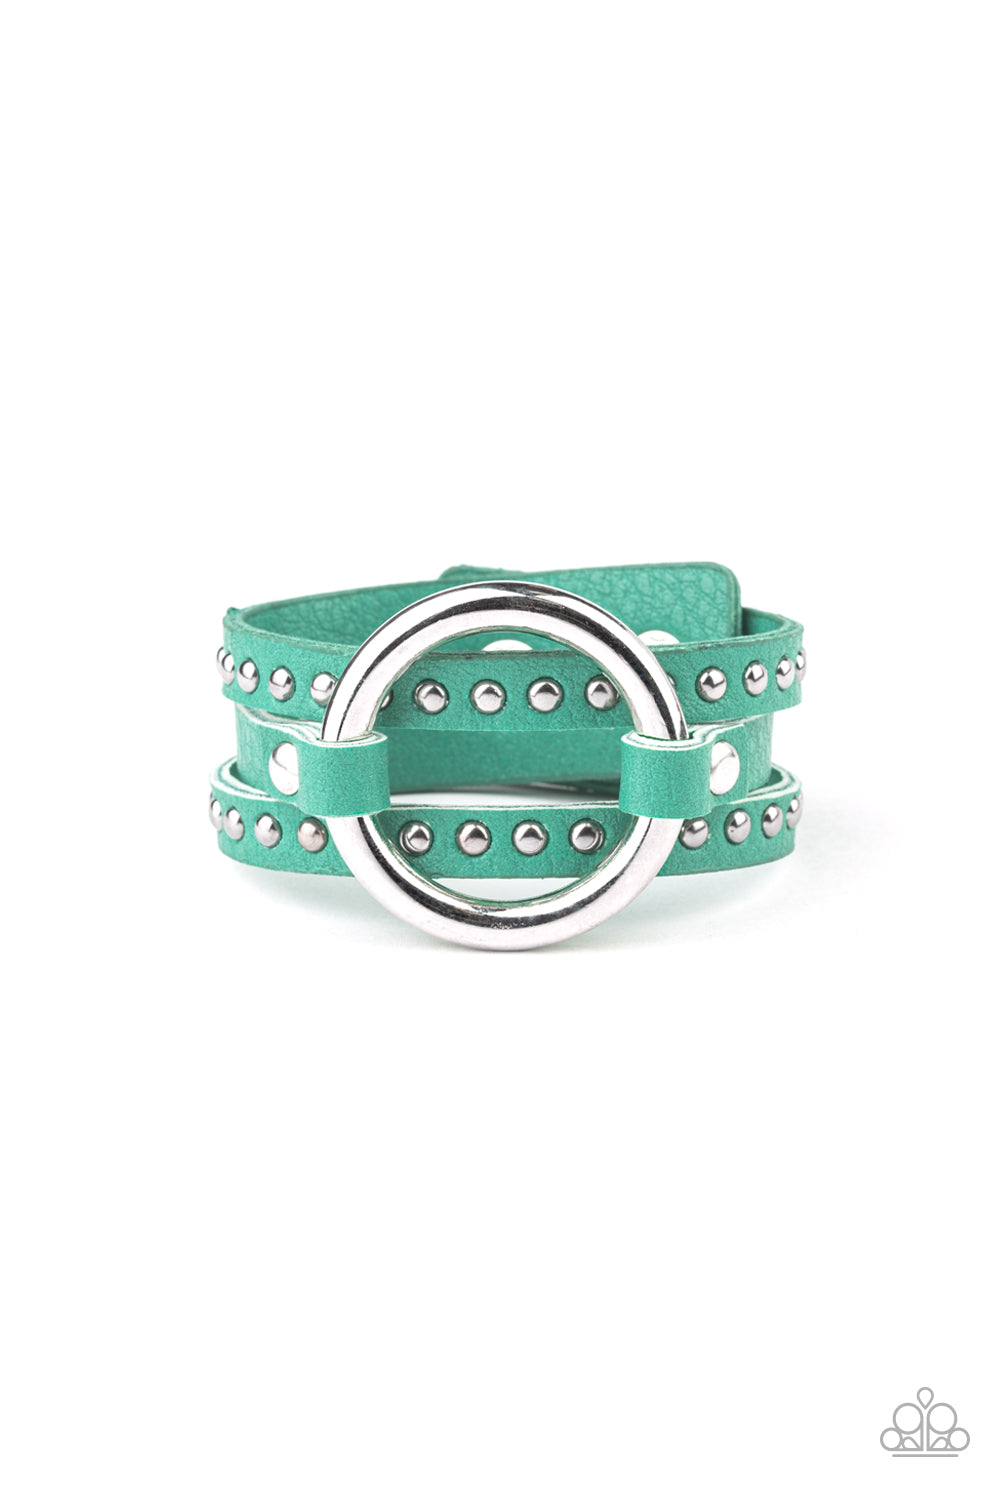 Paparazzi Bracelet ~ Studded Statement-Maker - Green